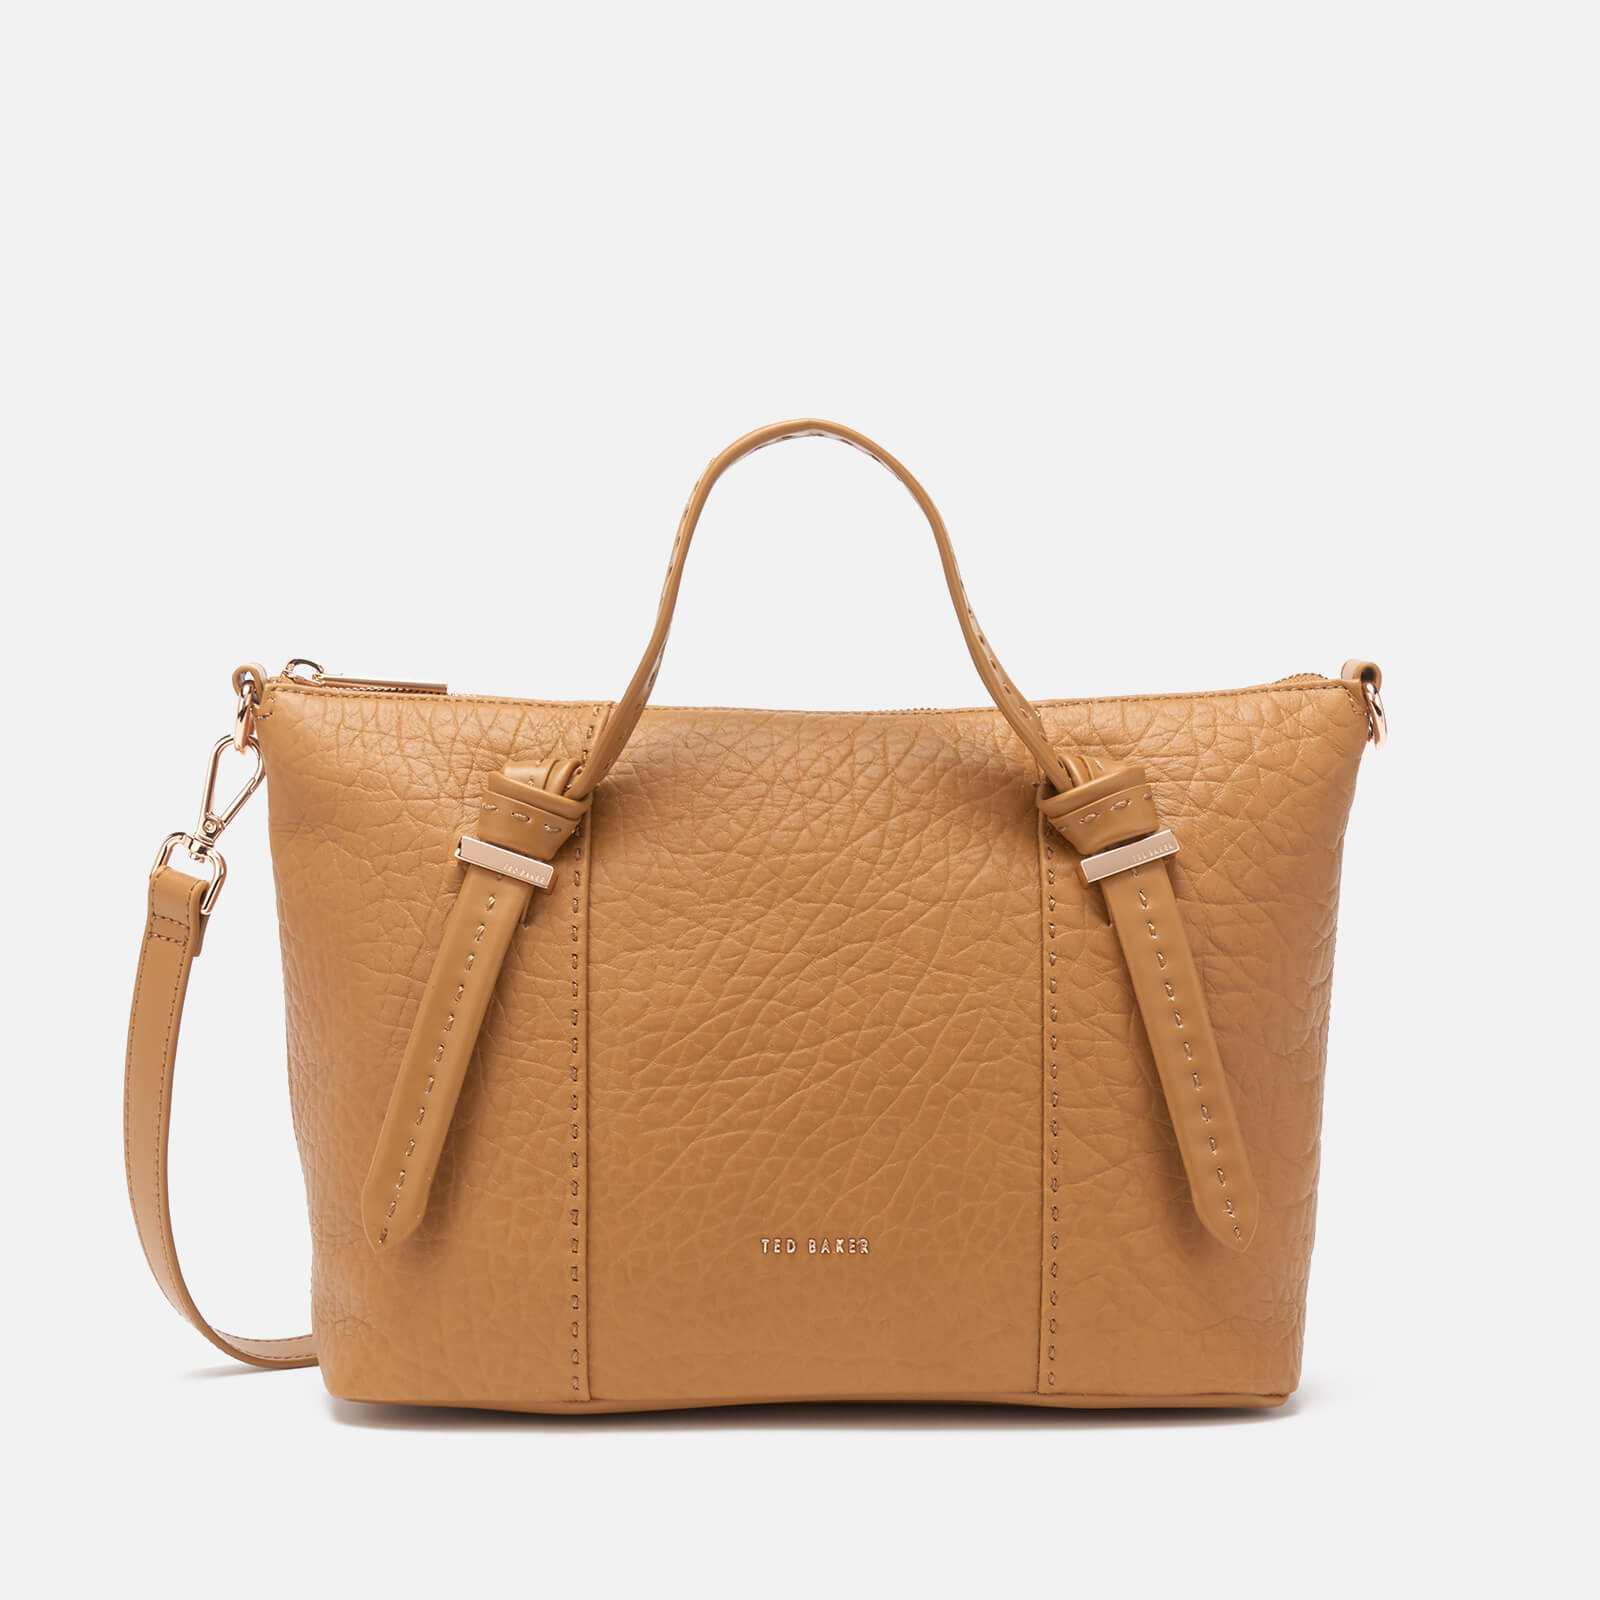 Ted Baker Women's Olmia Knotted Handle Small Tote Bag - Tan 原價189英鎊 優惠價114